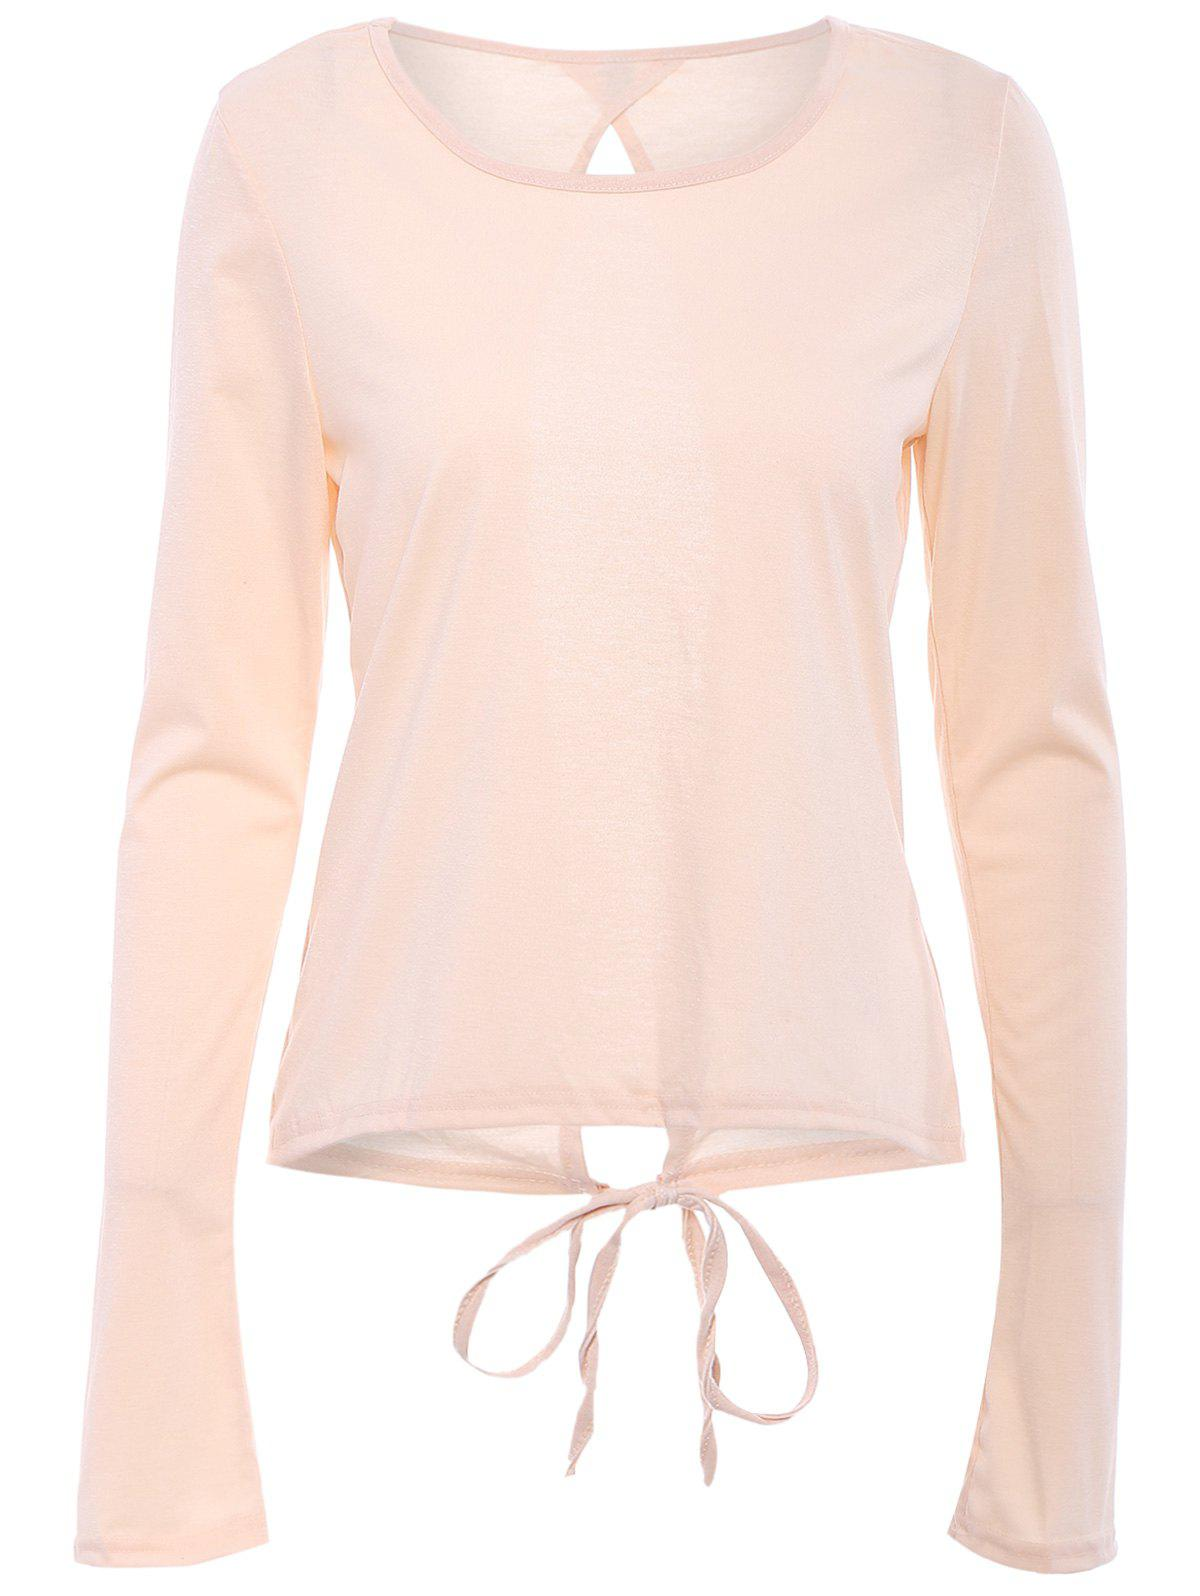 Chic Scoop Neck Long Sleeve Cut Out Pure Color Women's T-Shirt - APRICOT S